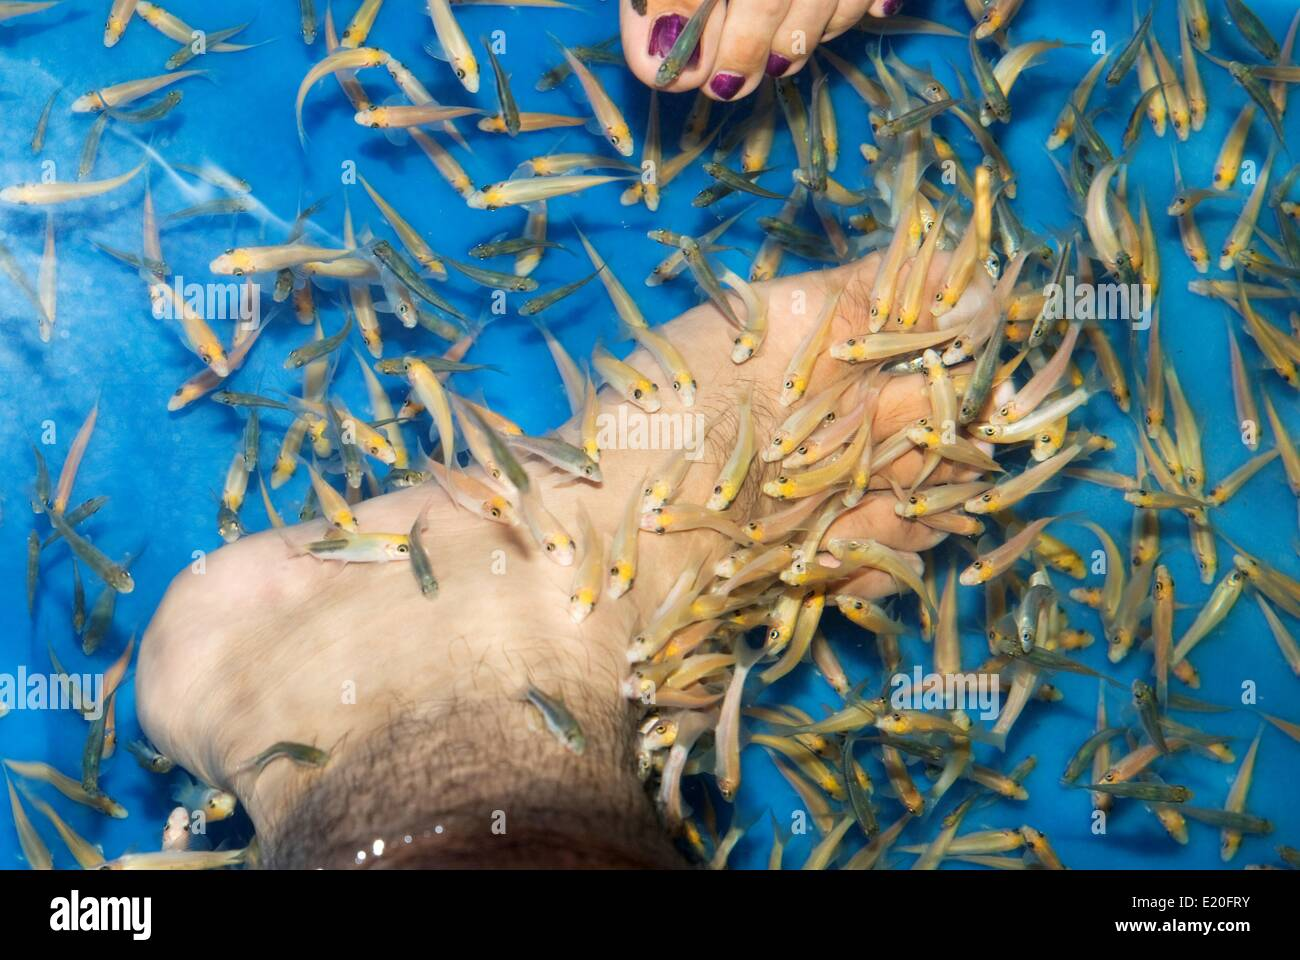 Foot therapy fish spa - Stock Image